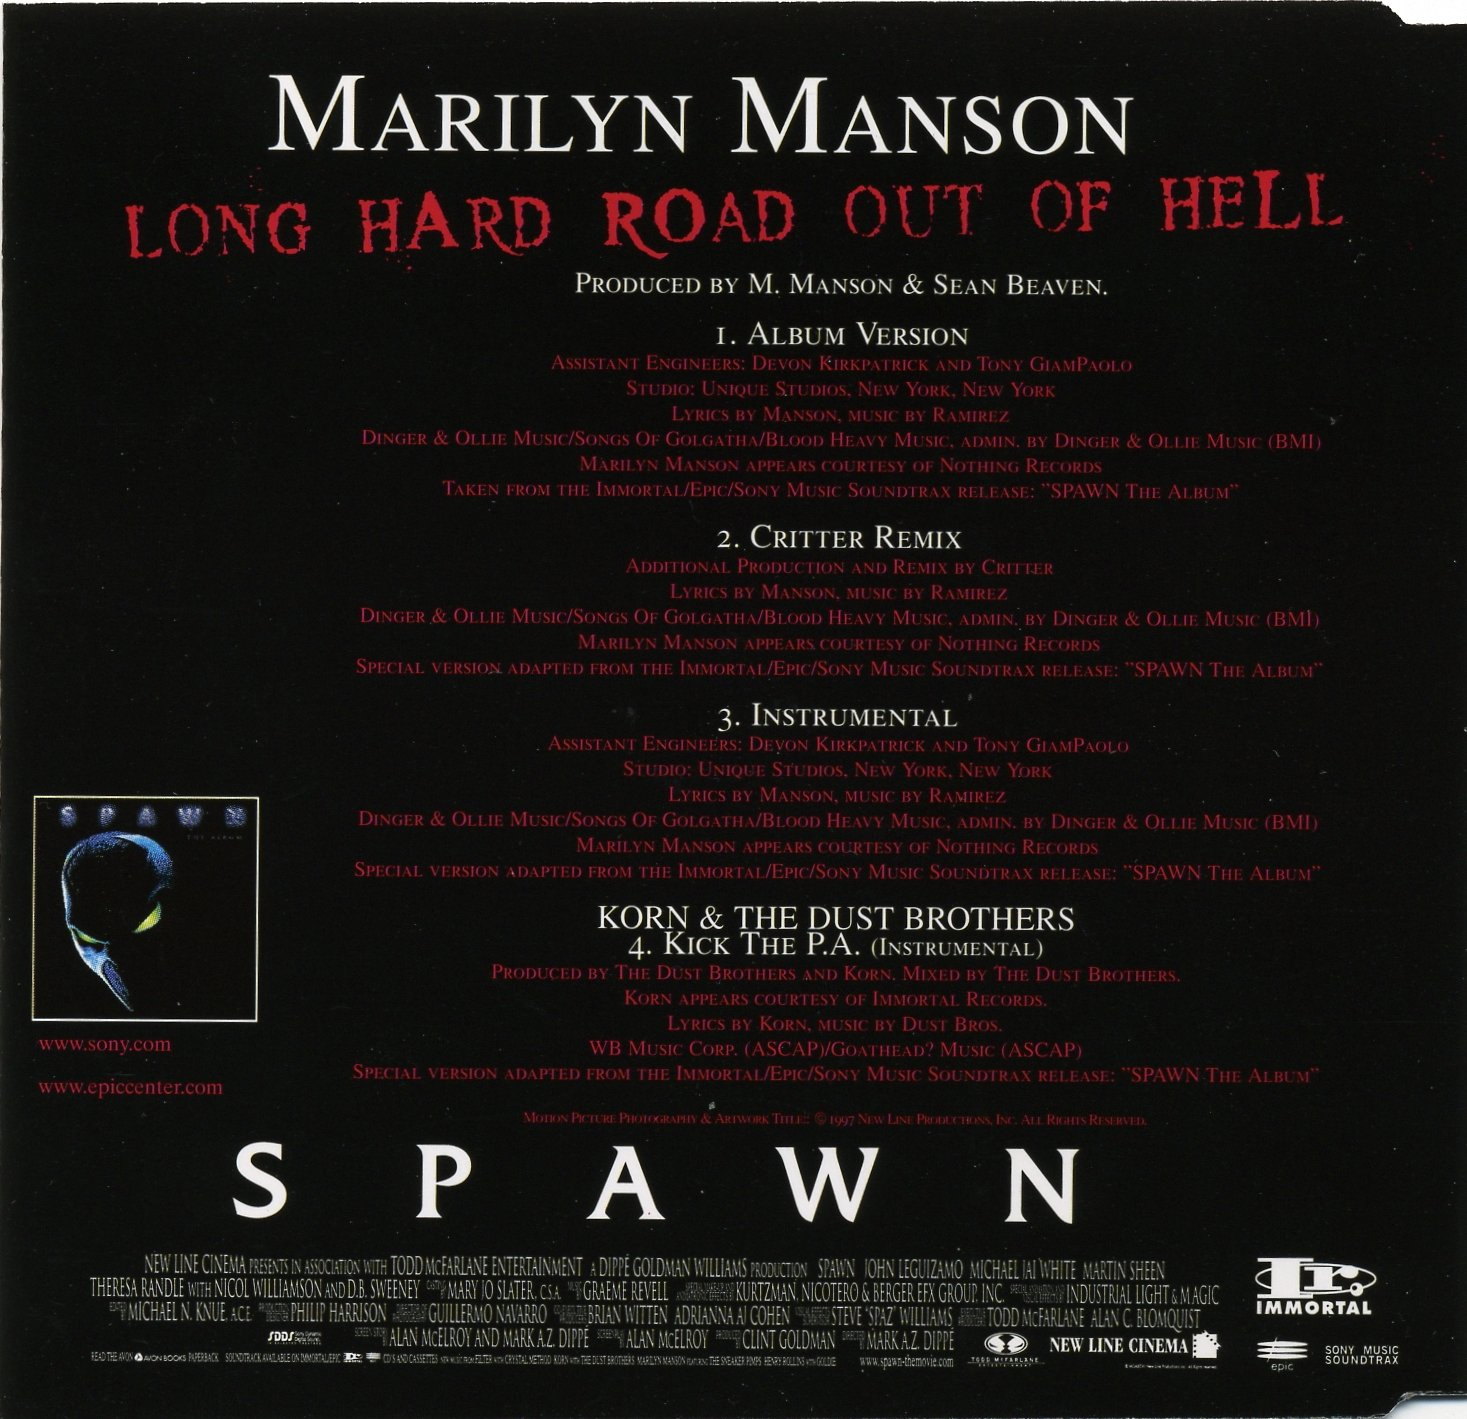 Marilyn Manson: Long Hard Road Out Of Hell DE CD Single